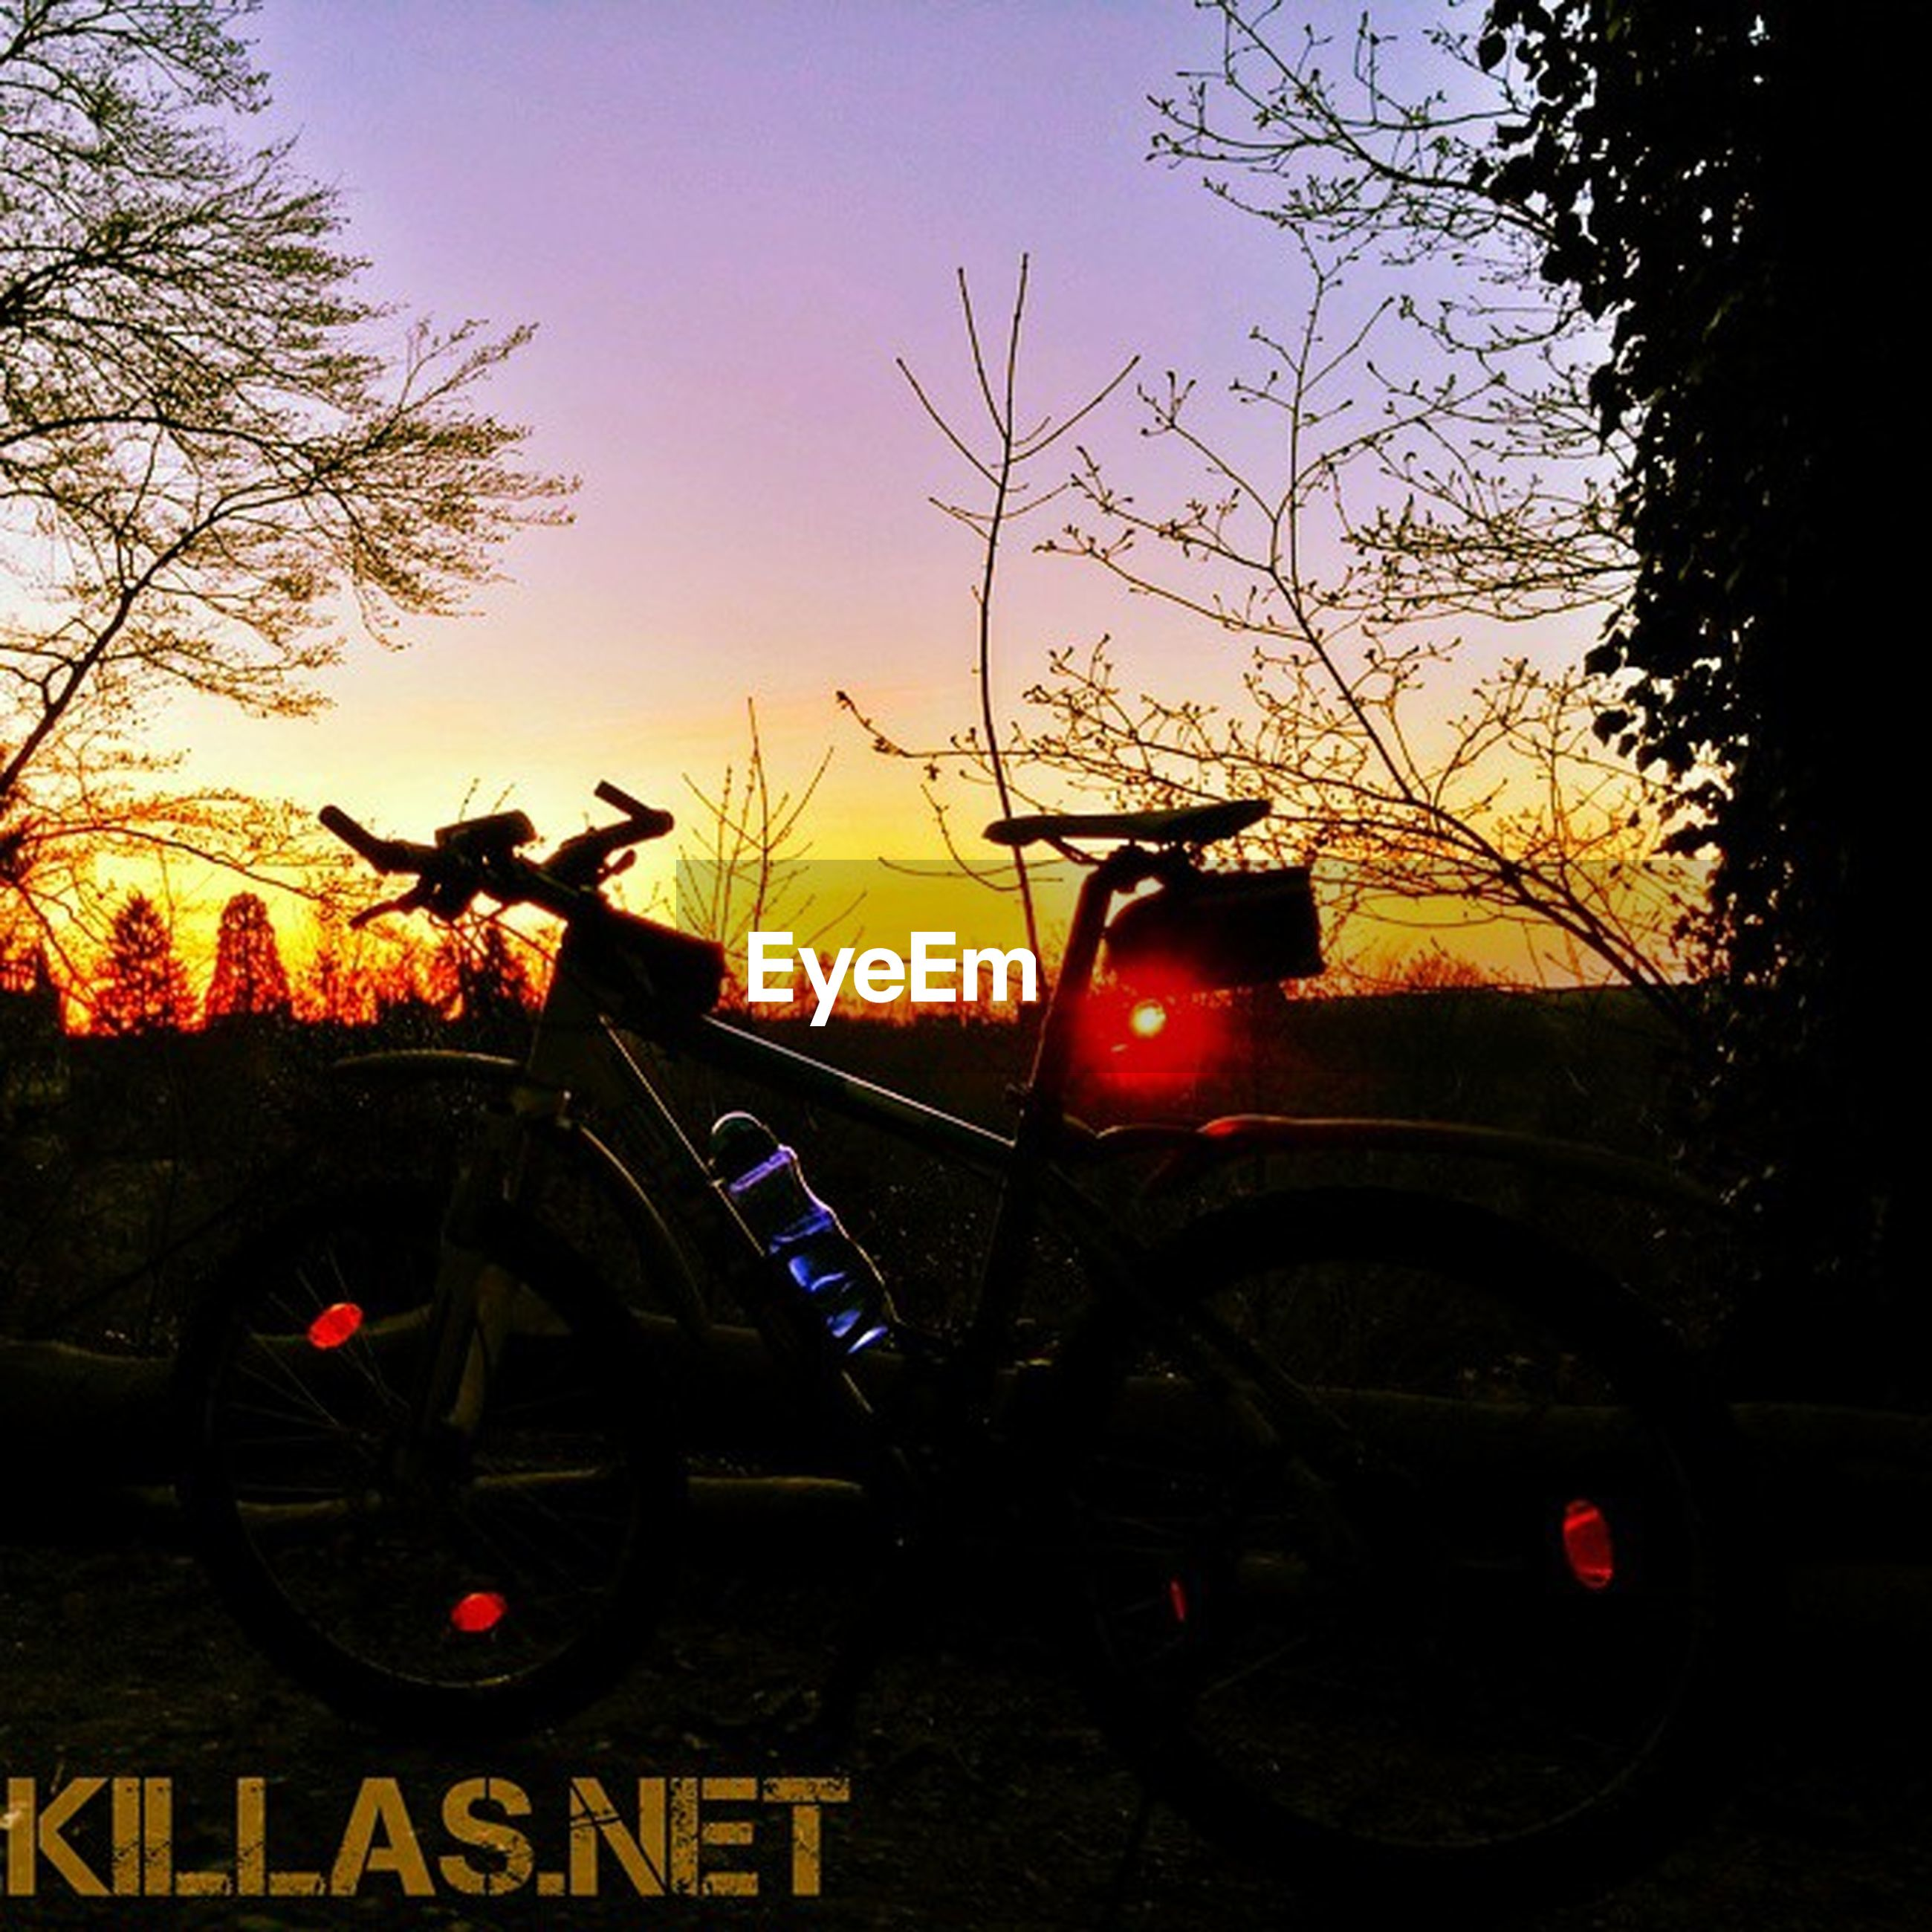 transportation, sunset, land vehicle, mode of transport, car, tree, bare tree, orange color, sky, road, yellow, illuminated, travel, clear sky, street, dusk, traffic, on the move, outdoors, text